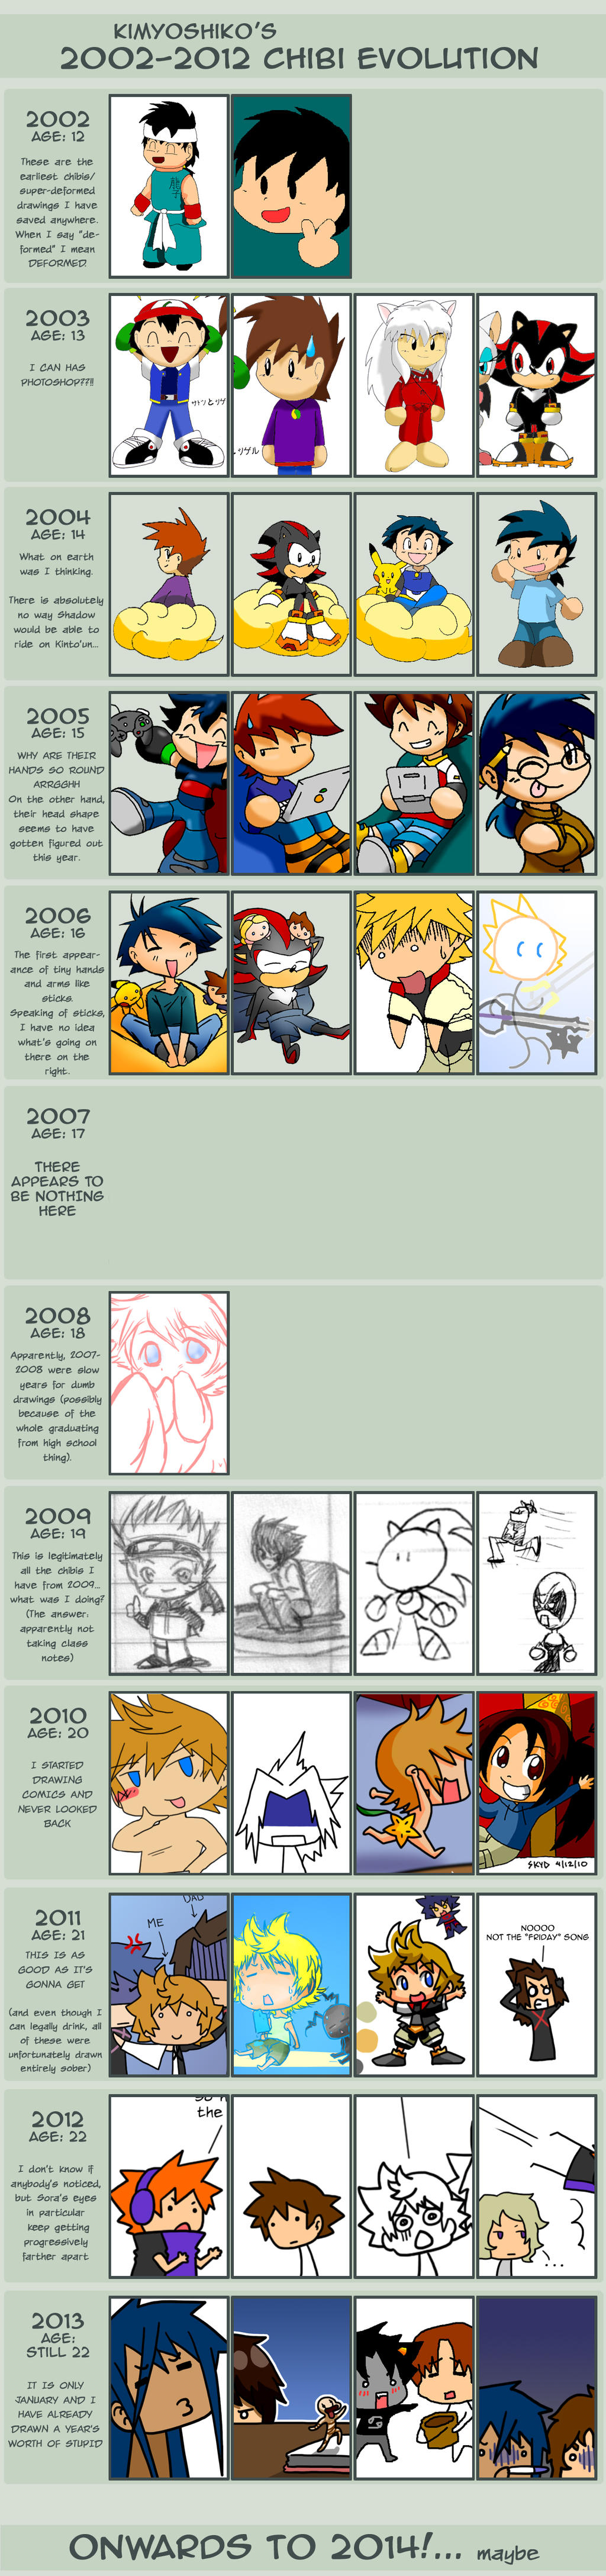 2002-13 Improvement Meme - Chibis by KimYoshiko